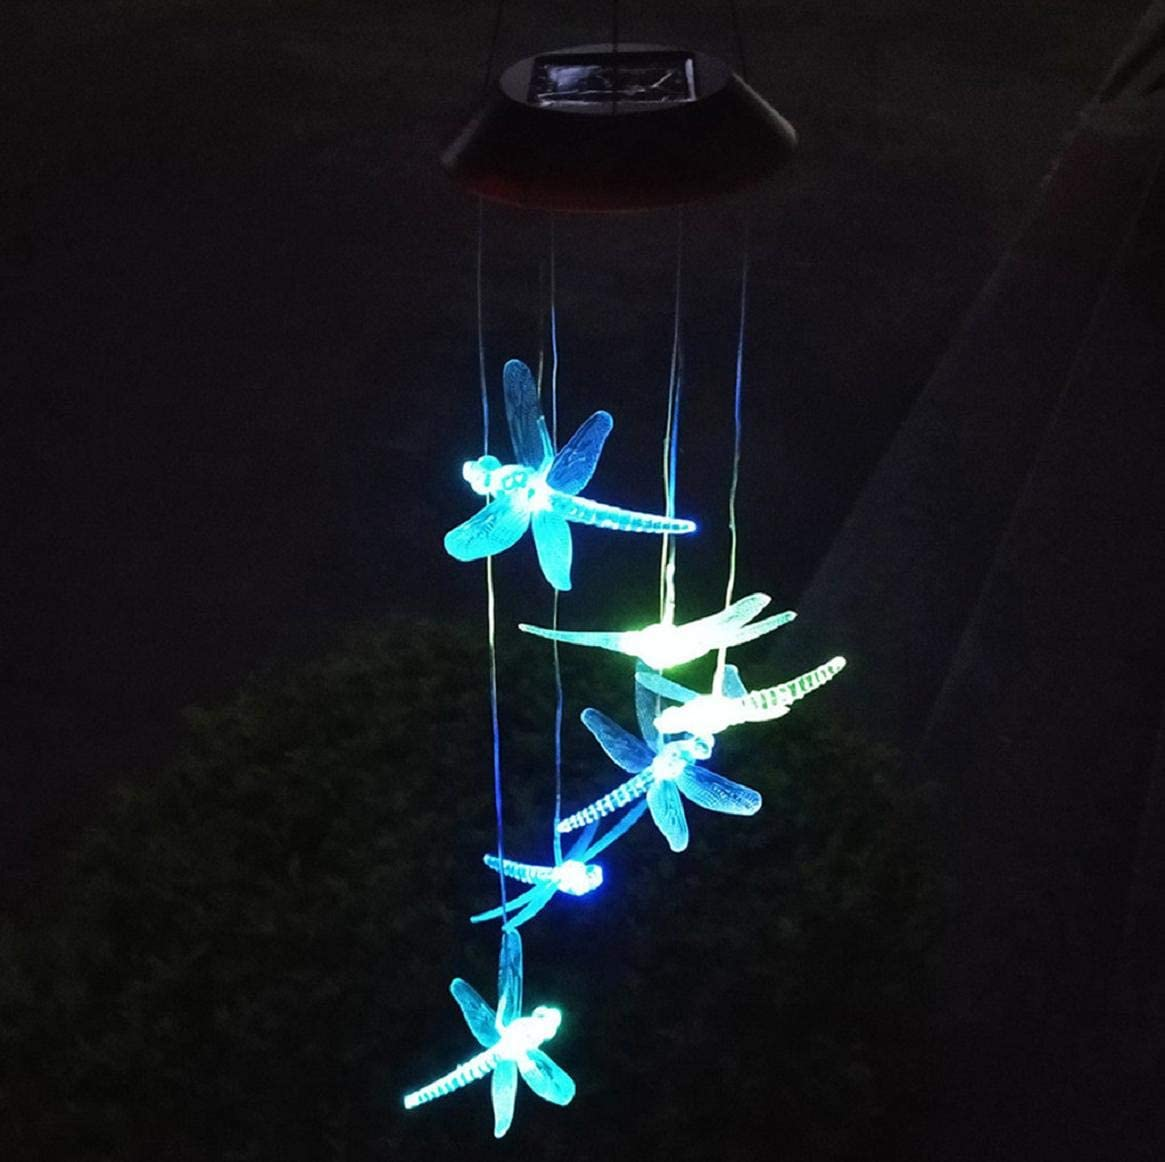 Outdoor LED Solar Waterproof Dragonflies Solar Powered Wind Chimes for Yard//Home//Garden//Festival Decor Color-Changing Lights Boddenly Dragonfly Solar Wind Chimes Solar Power Wind Chime